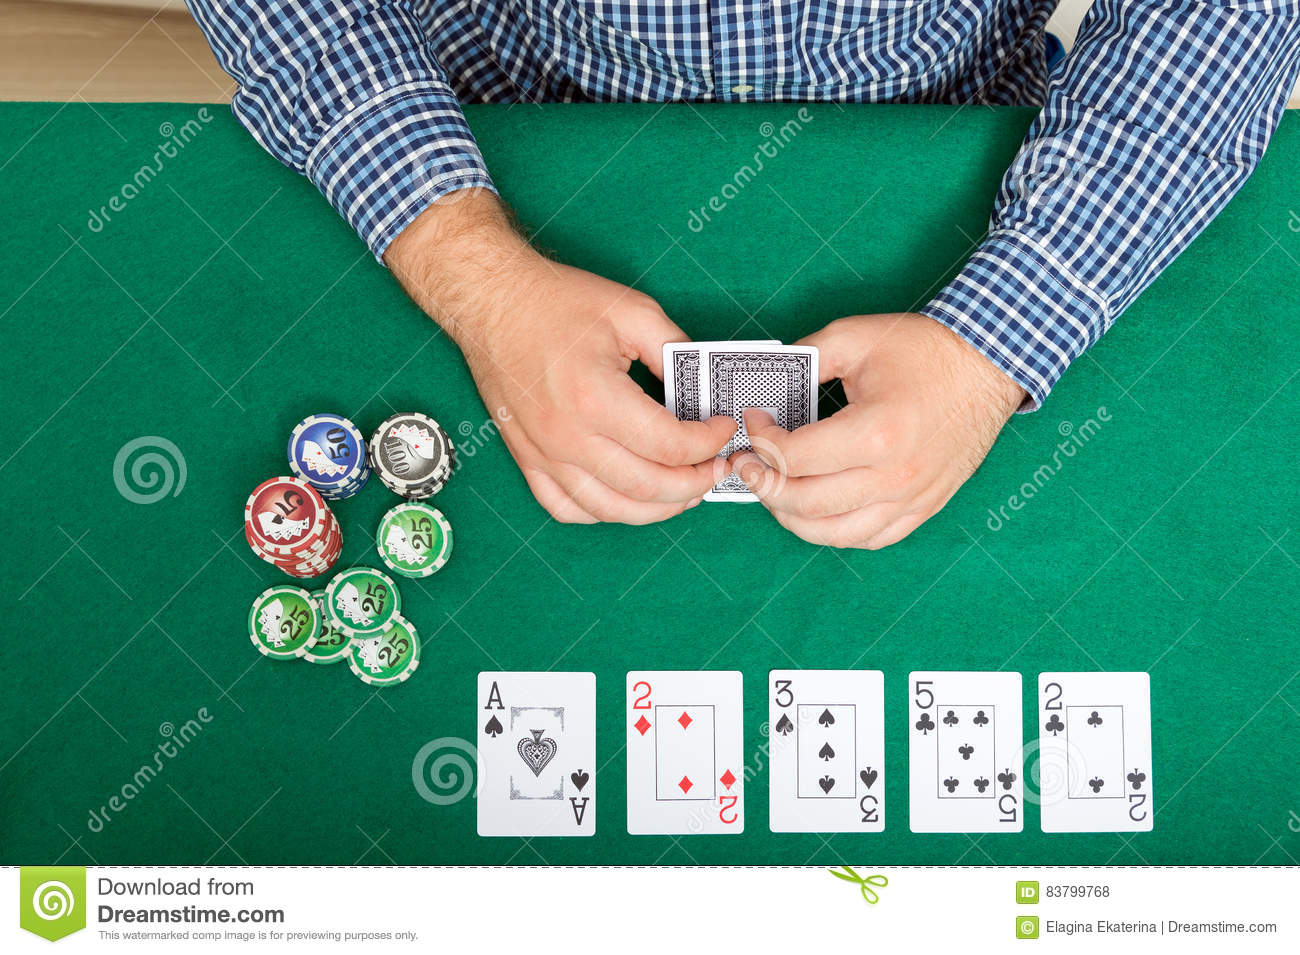 Download Chips And Cards For Poker In Hand On Green Table, Top View Stock  Photo